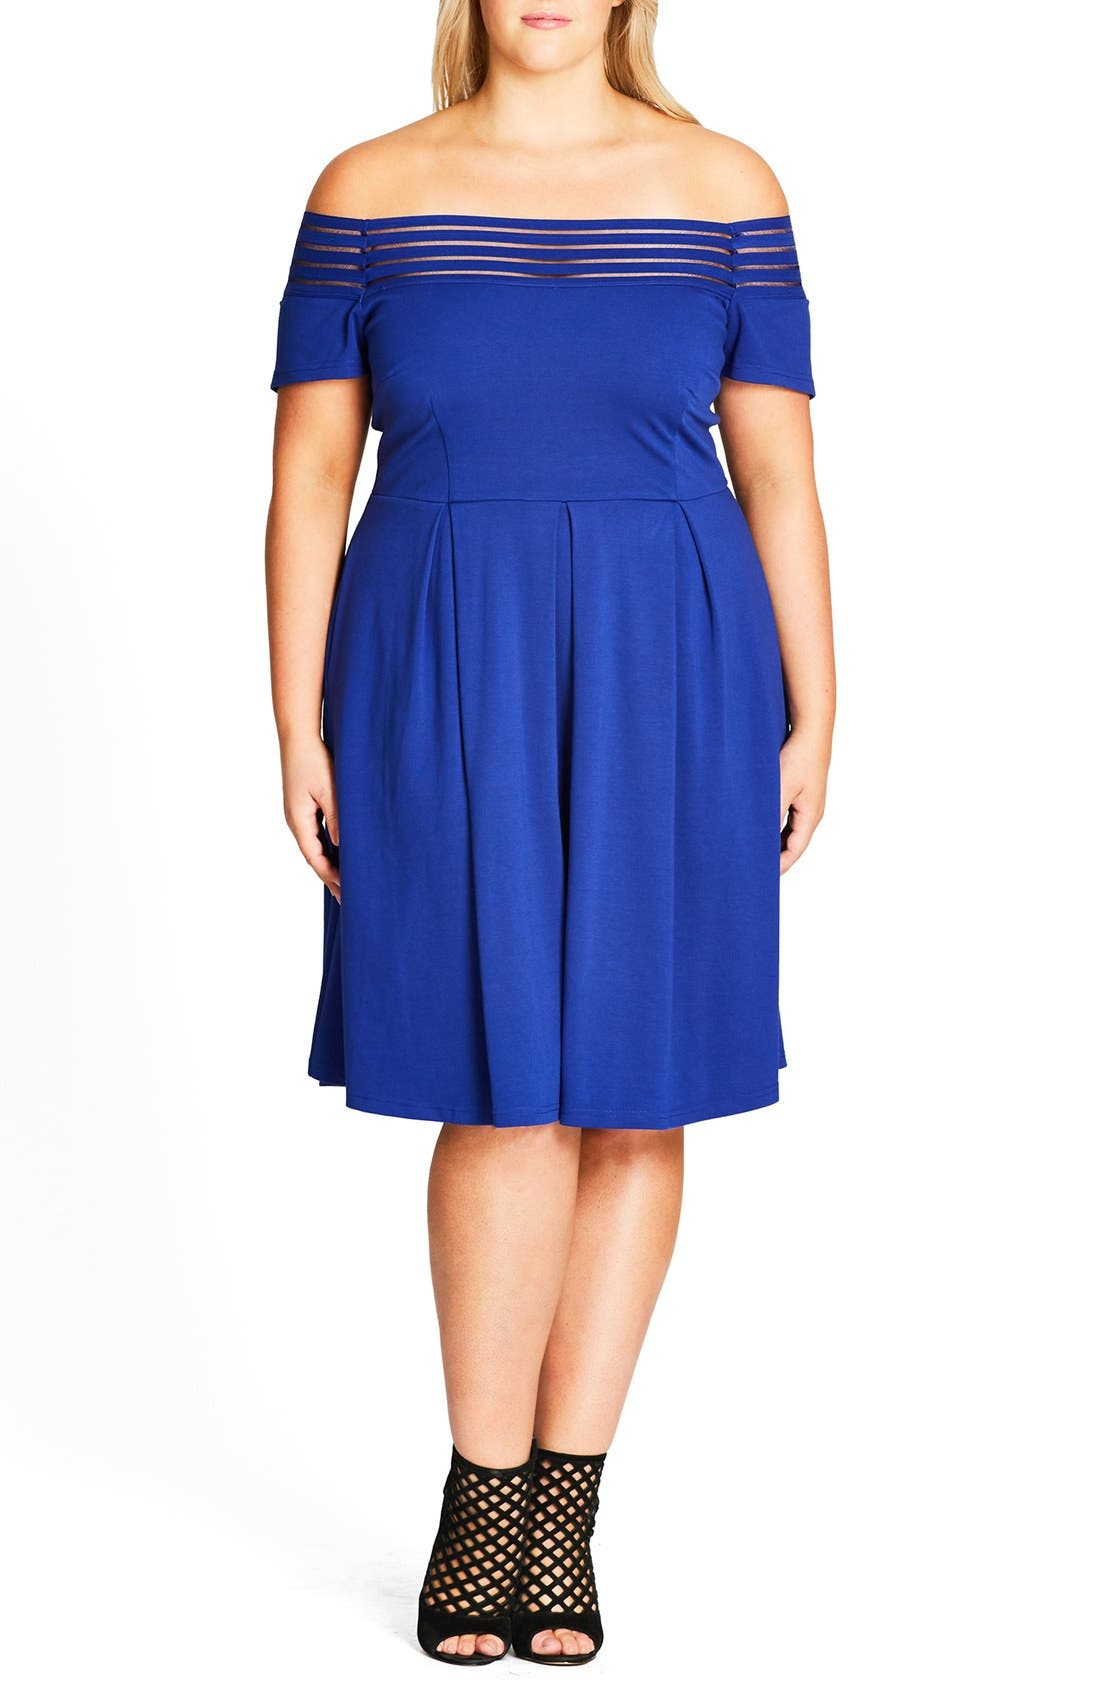 Alternate Image 1 Selected - City Chic Shadow Stripe Off the Shoulder Dress (Plus Size)